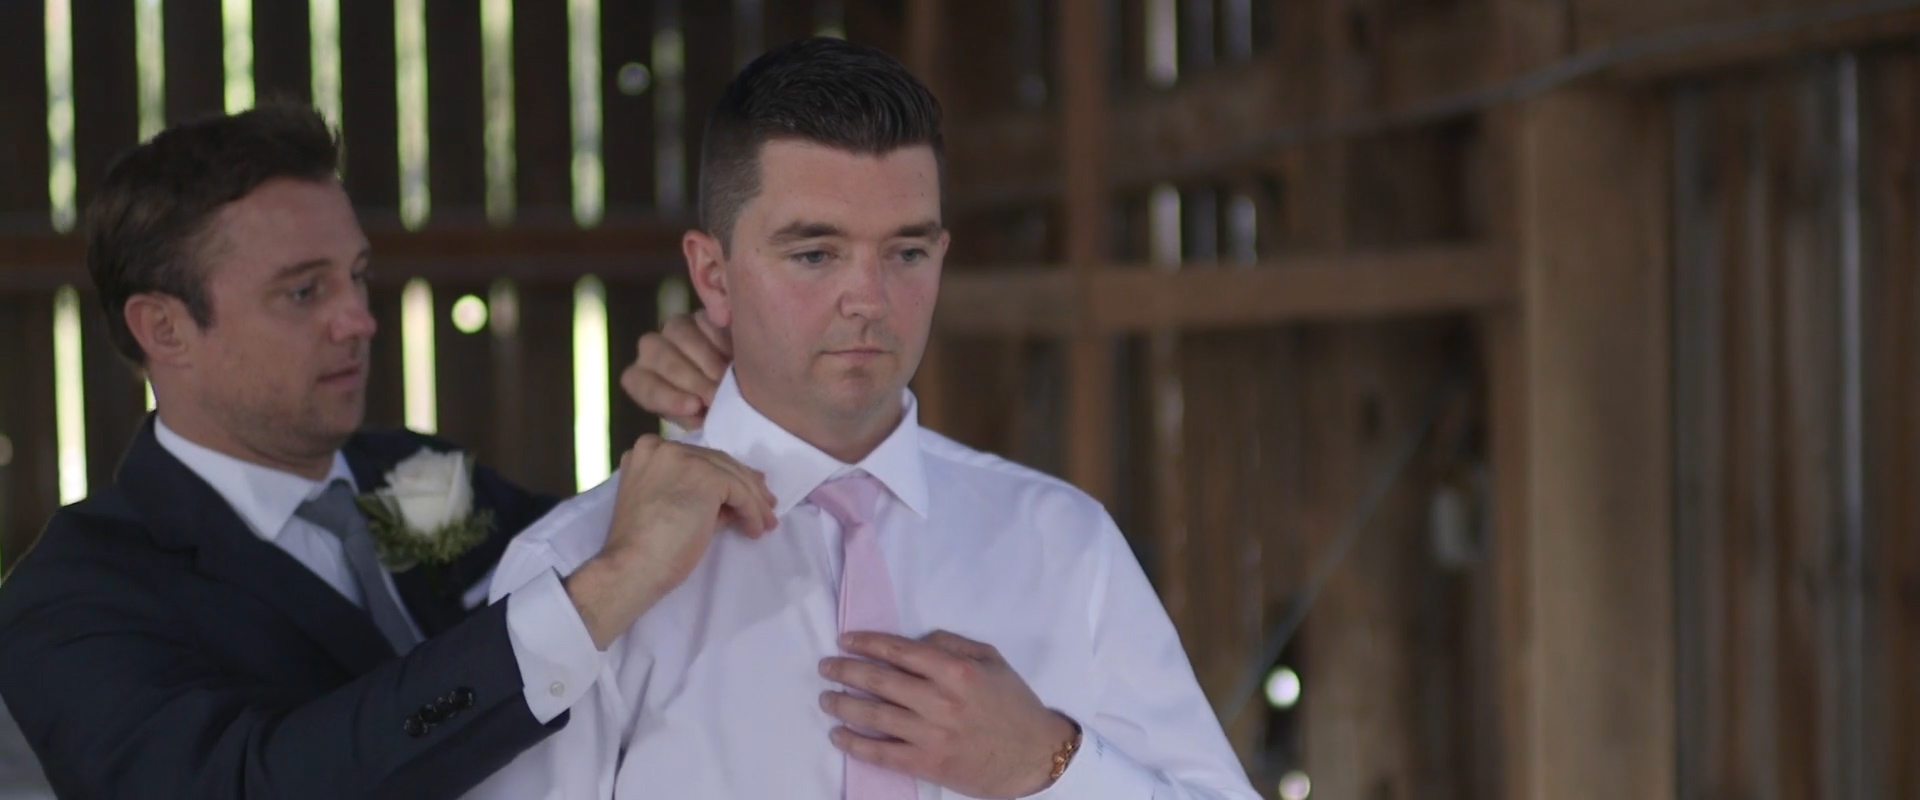 Image of a groom getting ready at lion head golf course, taken from one of our Toronto Wedding Videography videos